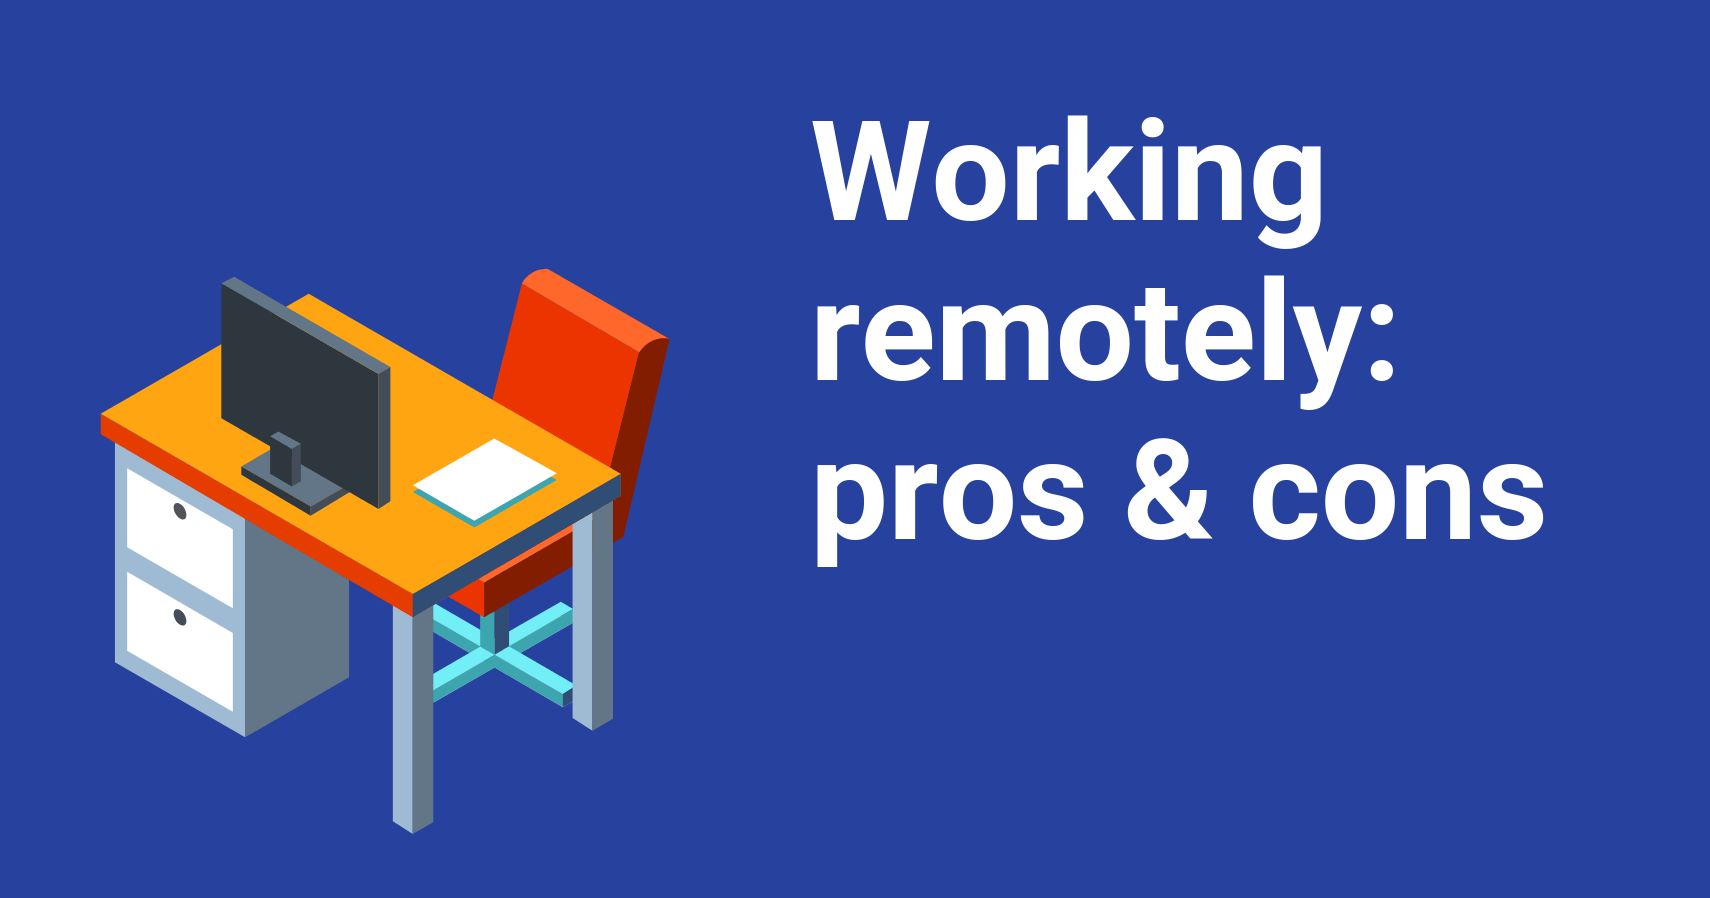 Working remotely pros cons